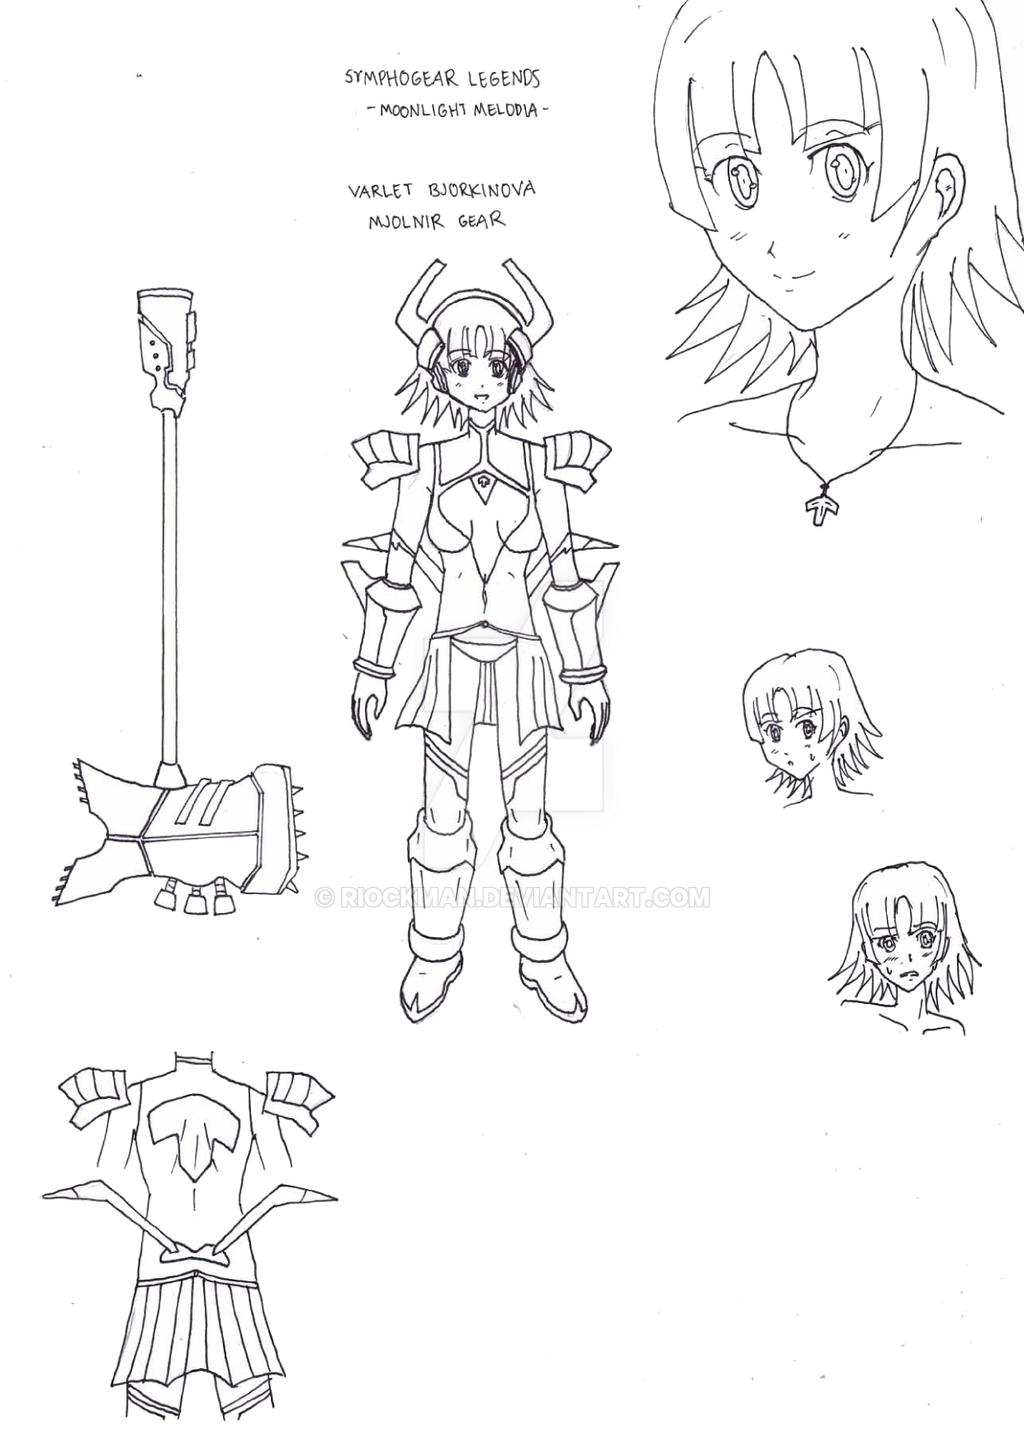 Symphogear Legends - Mjolnir Gear Rough Design by riockman